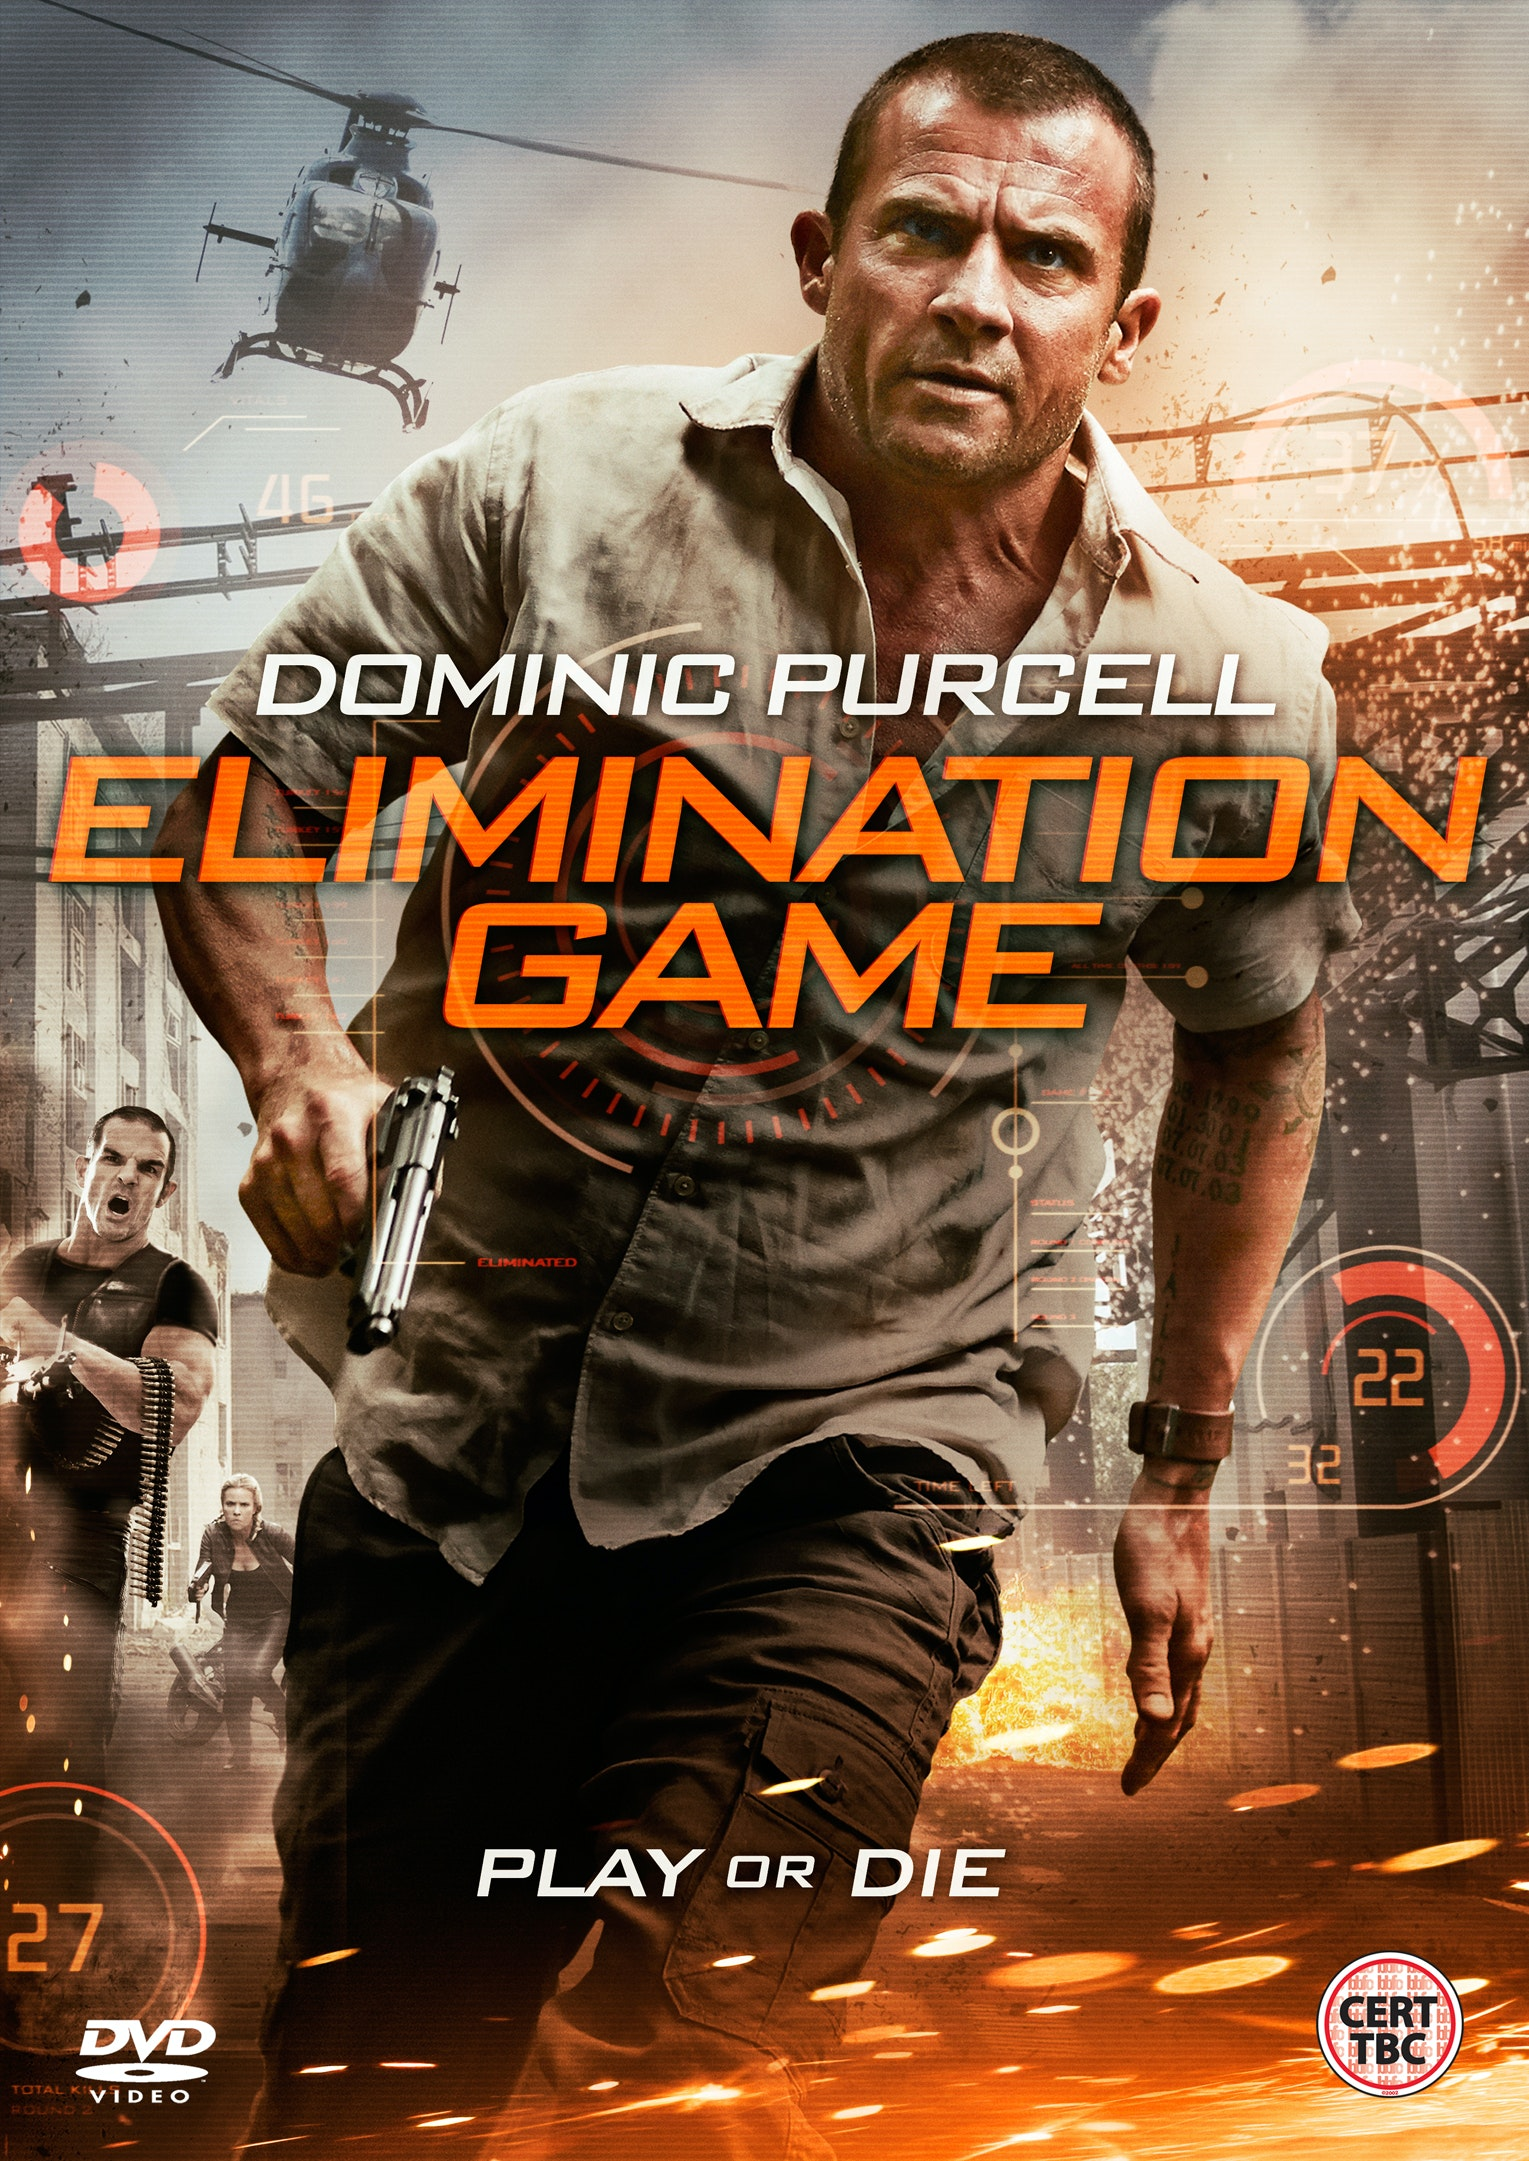 Elimination Game sweepstakes